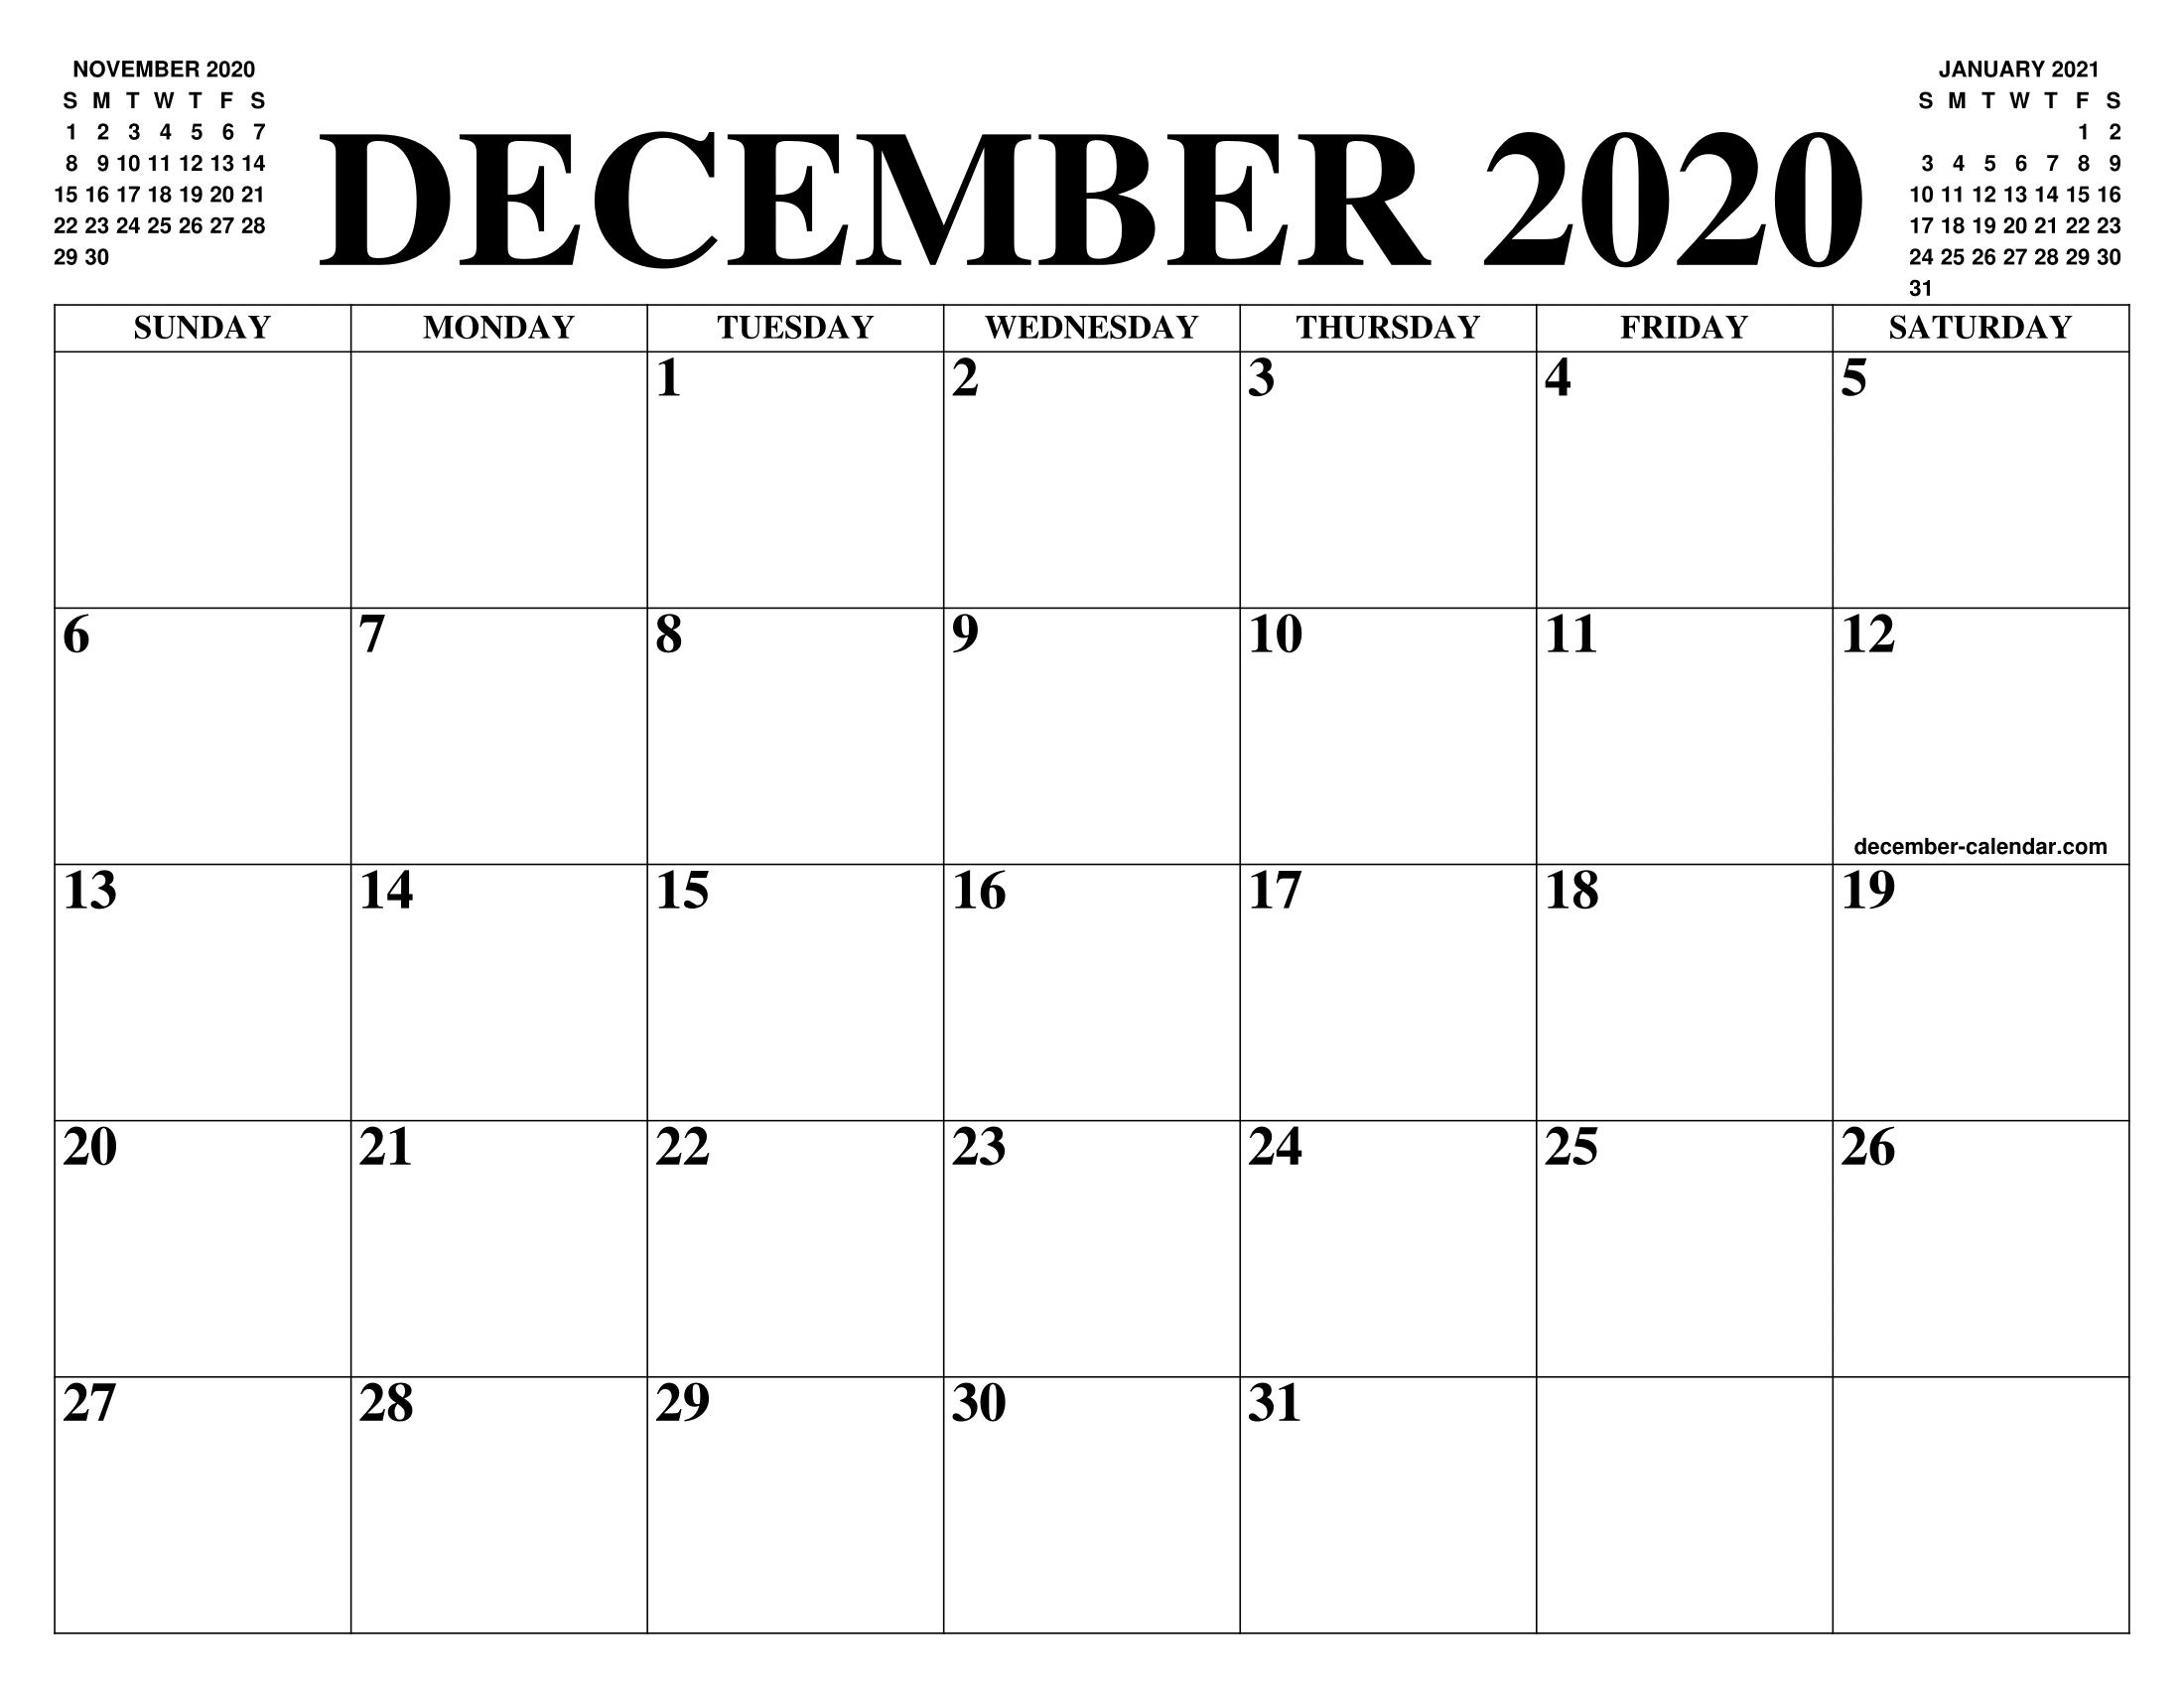 Calendar December 2020.December 2020 Calendar Of The Month Free Printable December